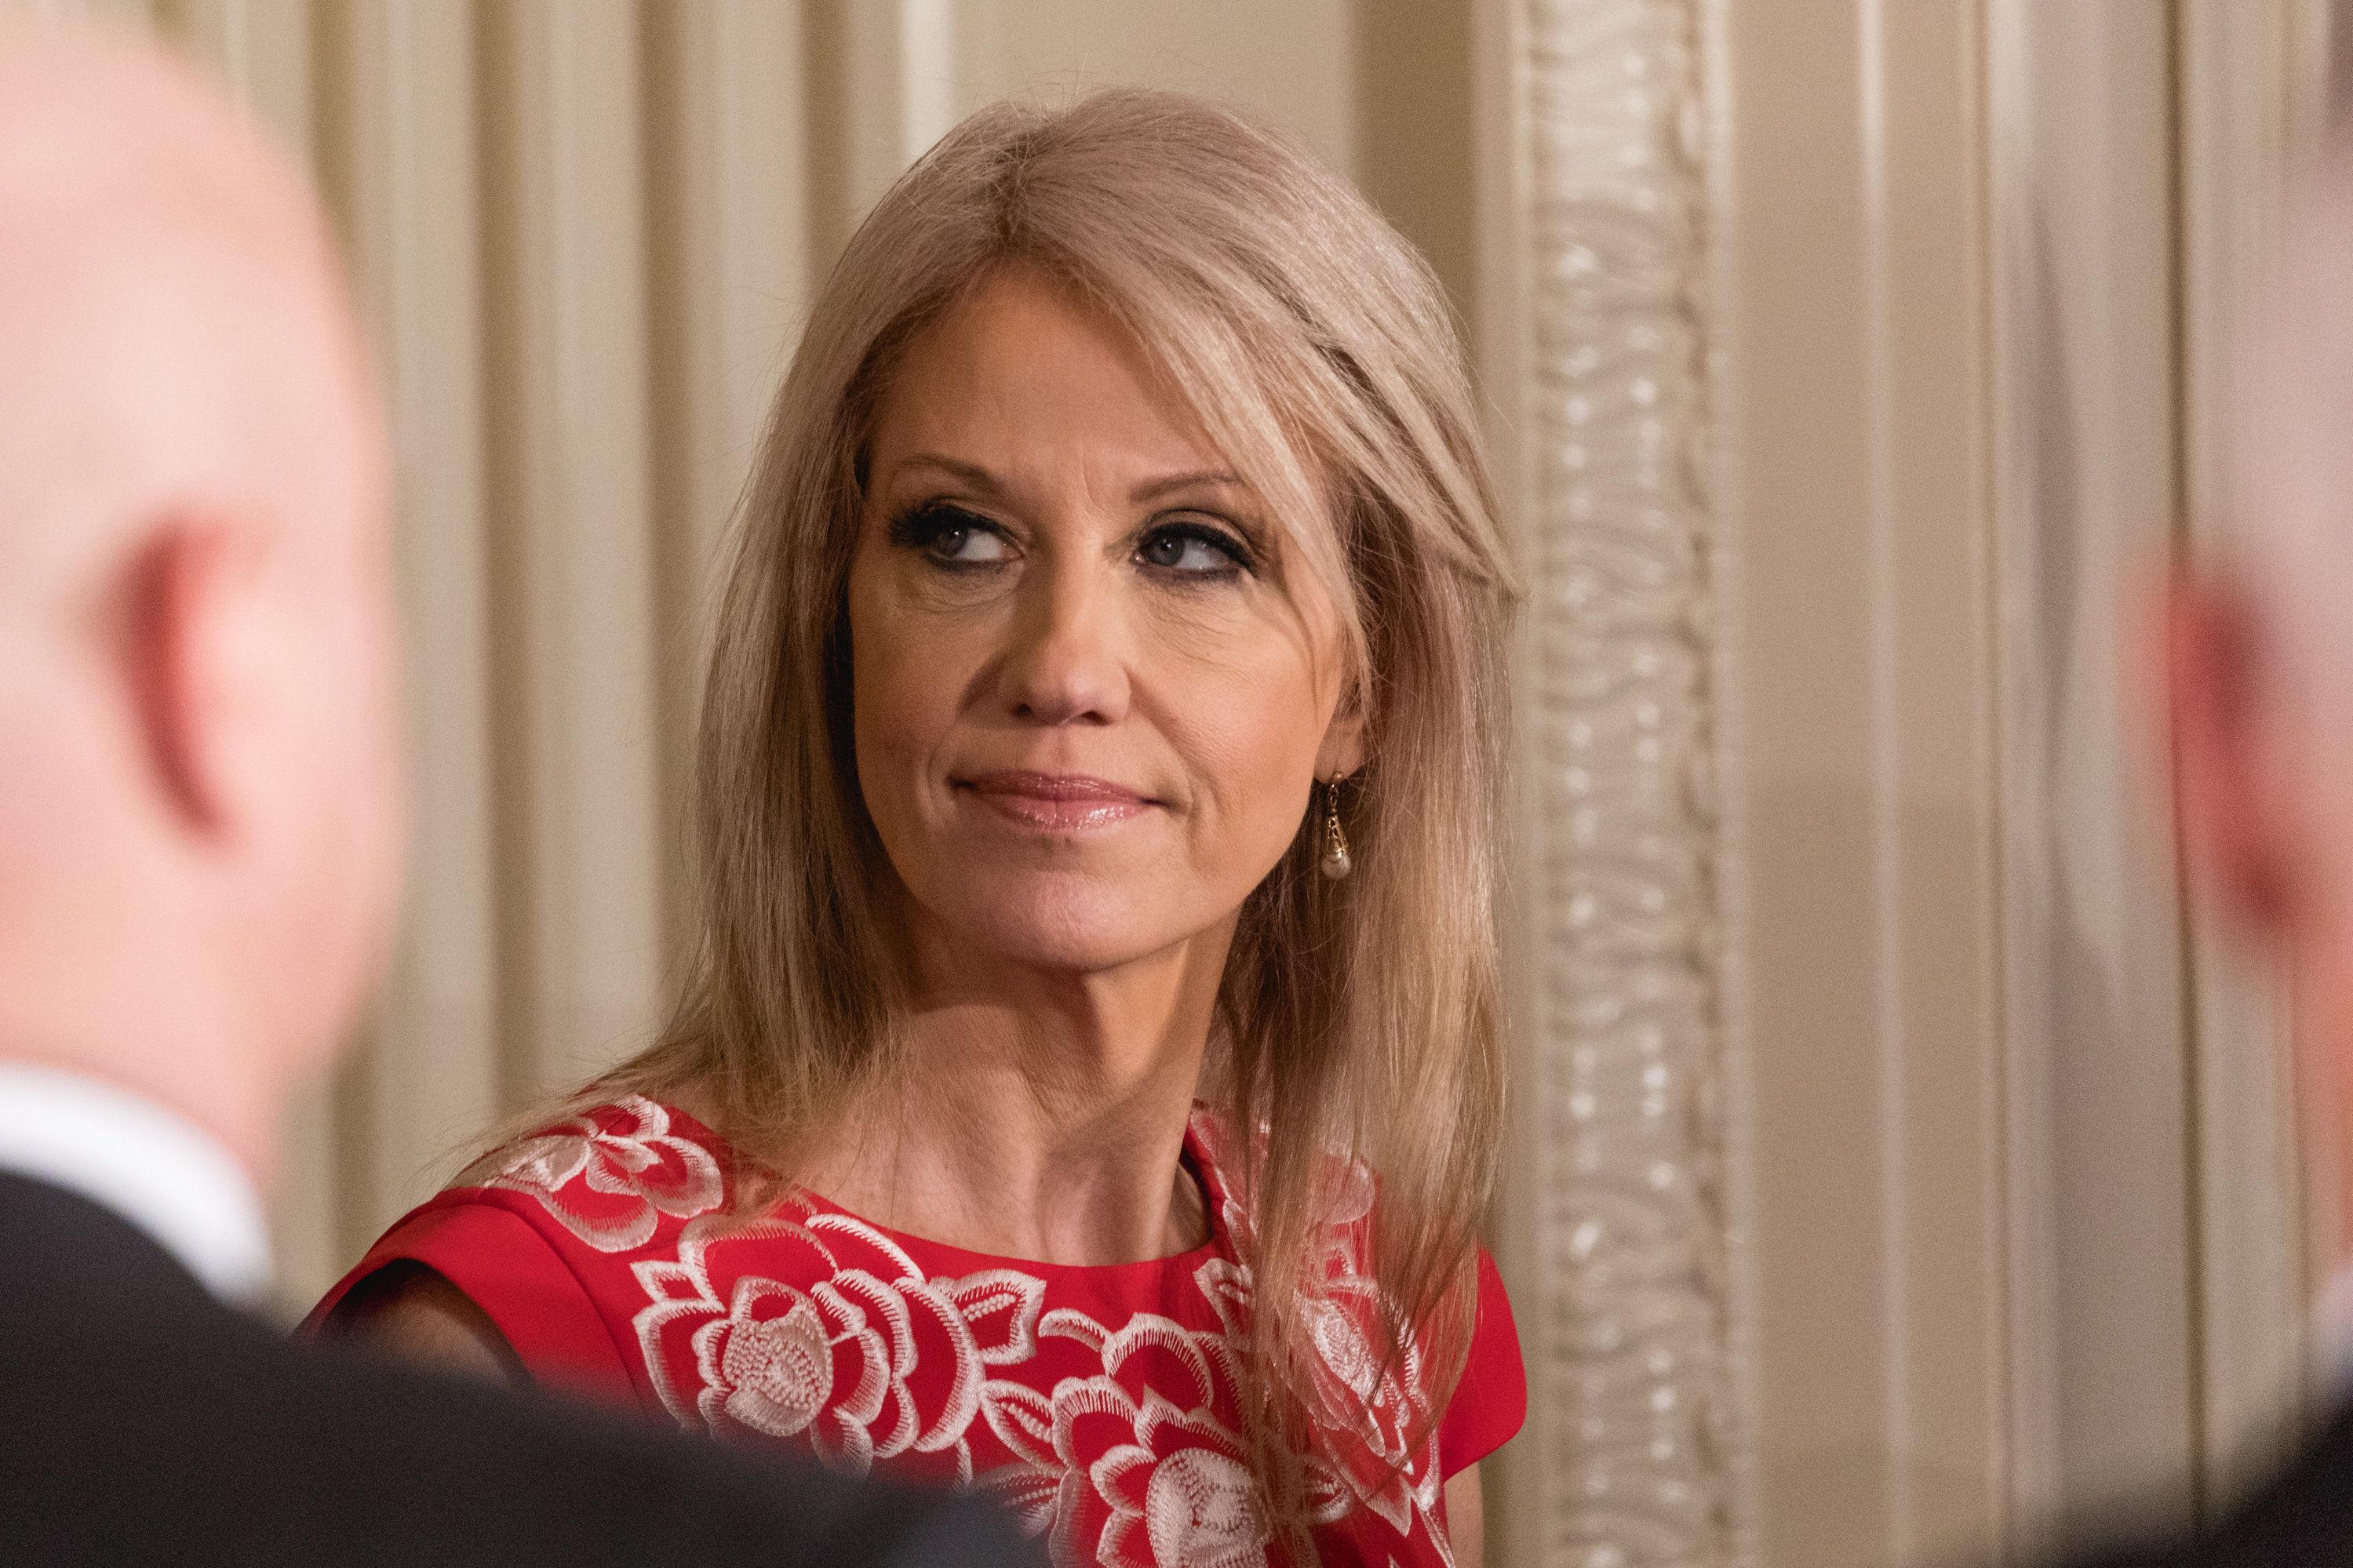 White House Counselor to the President Kellyanne Conway, was in attendance for the joint press conference of U.S. President Donald Trump, and Prime Minister Malcolm Turnbull of Australia, in the East Room of the White House, on Friday, February 23, 2018. (Photo by Cheriss May/NurPhoto via Getty Images)